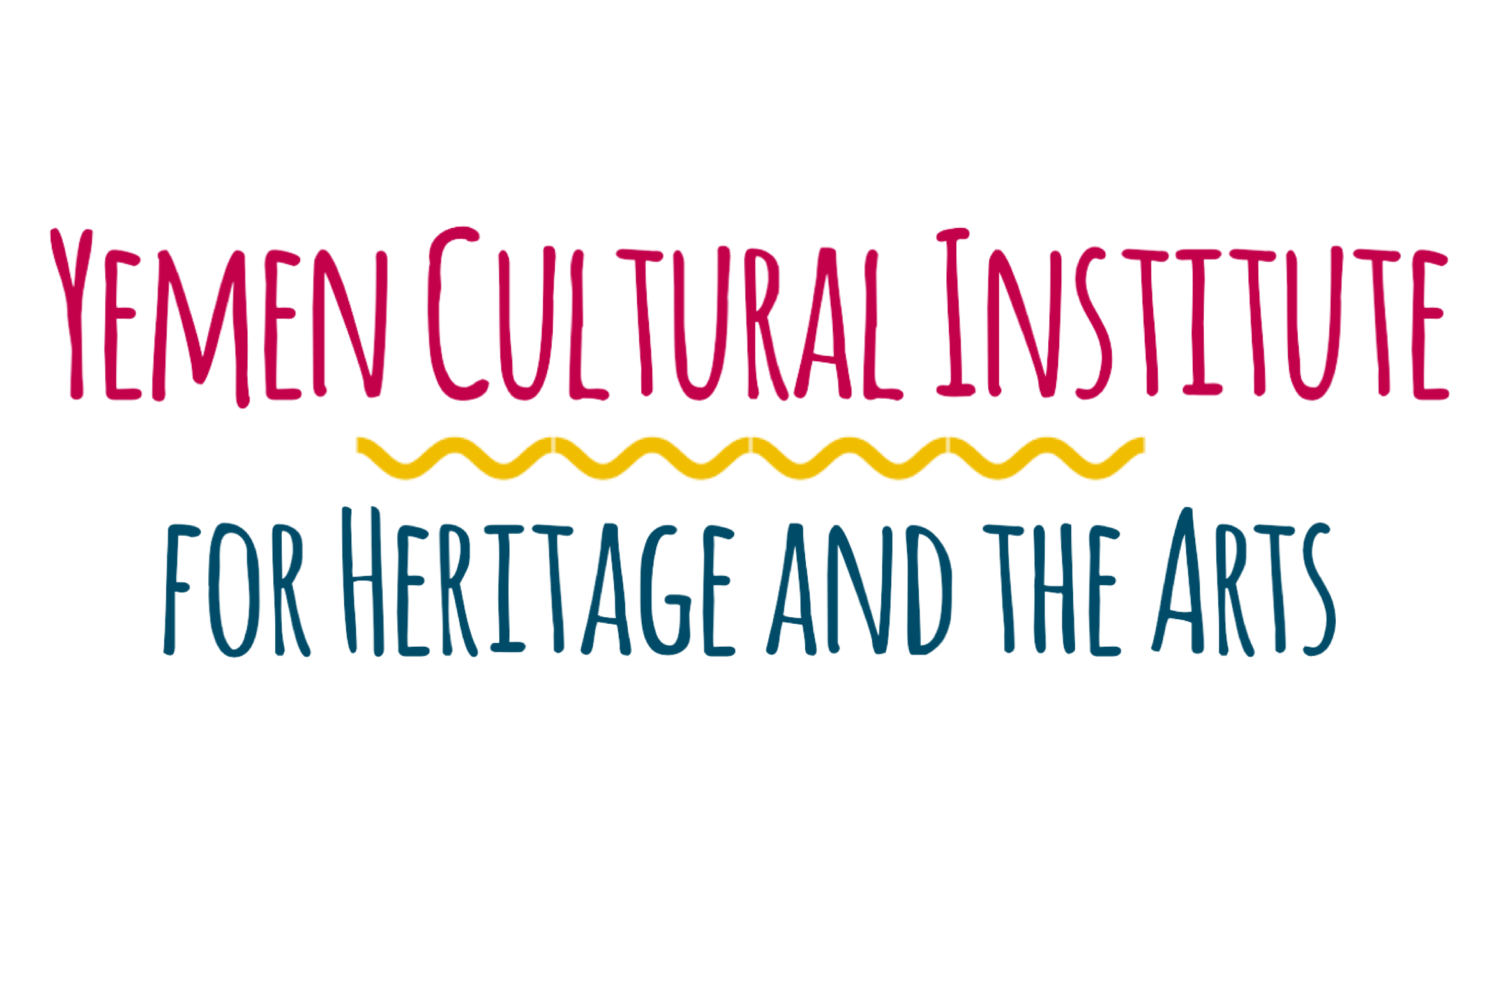 Yemen Cultural Institute for Heritage and the Arts